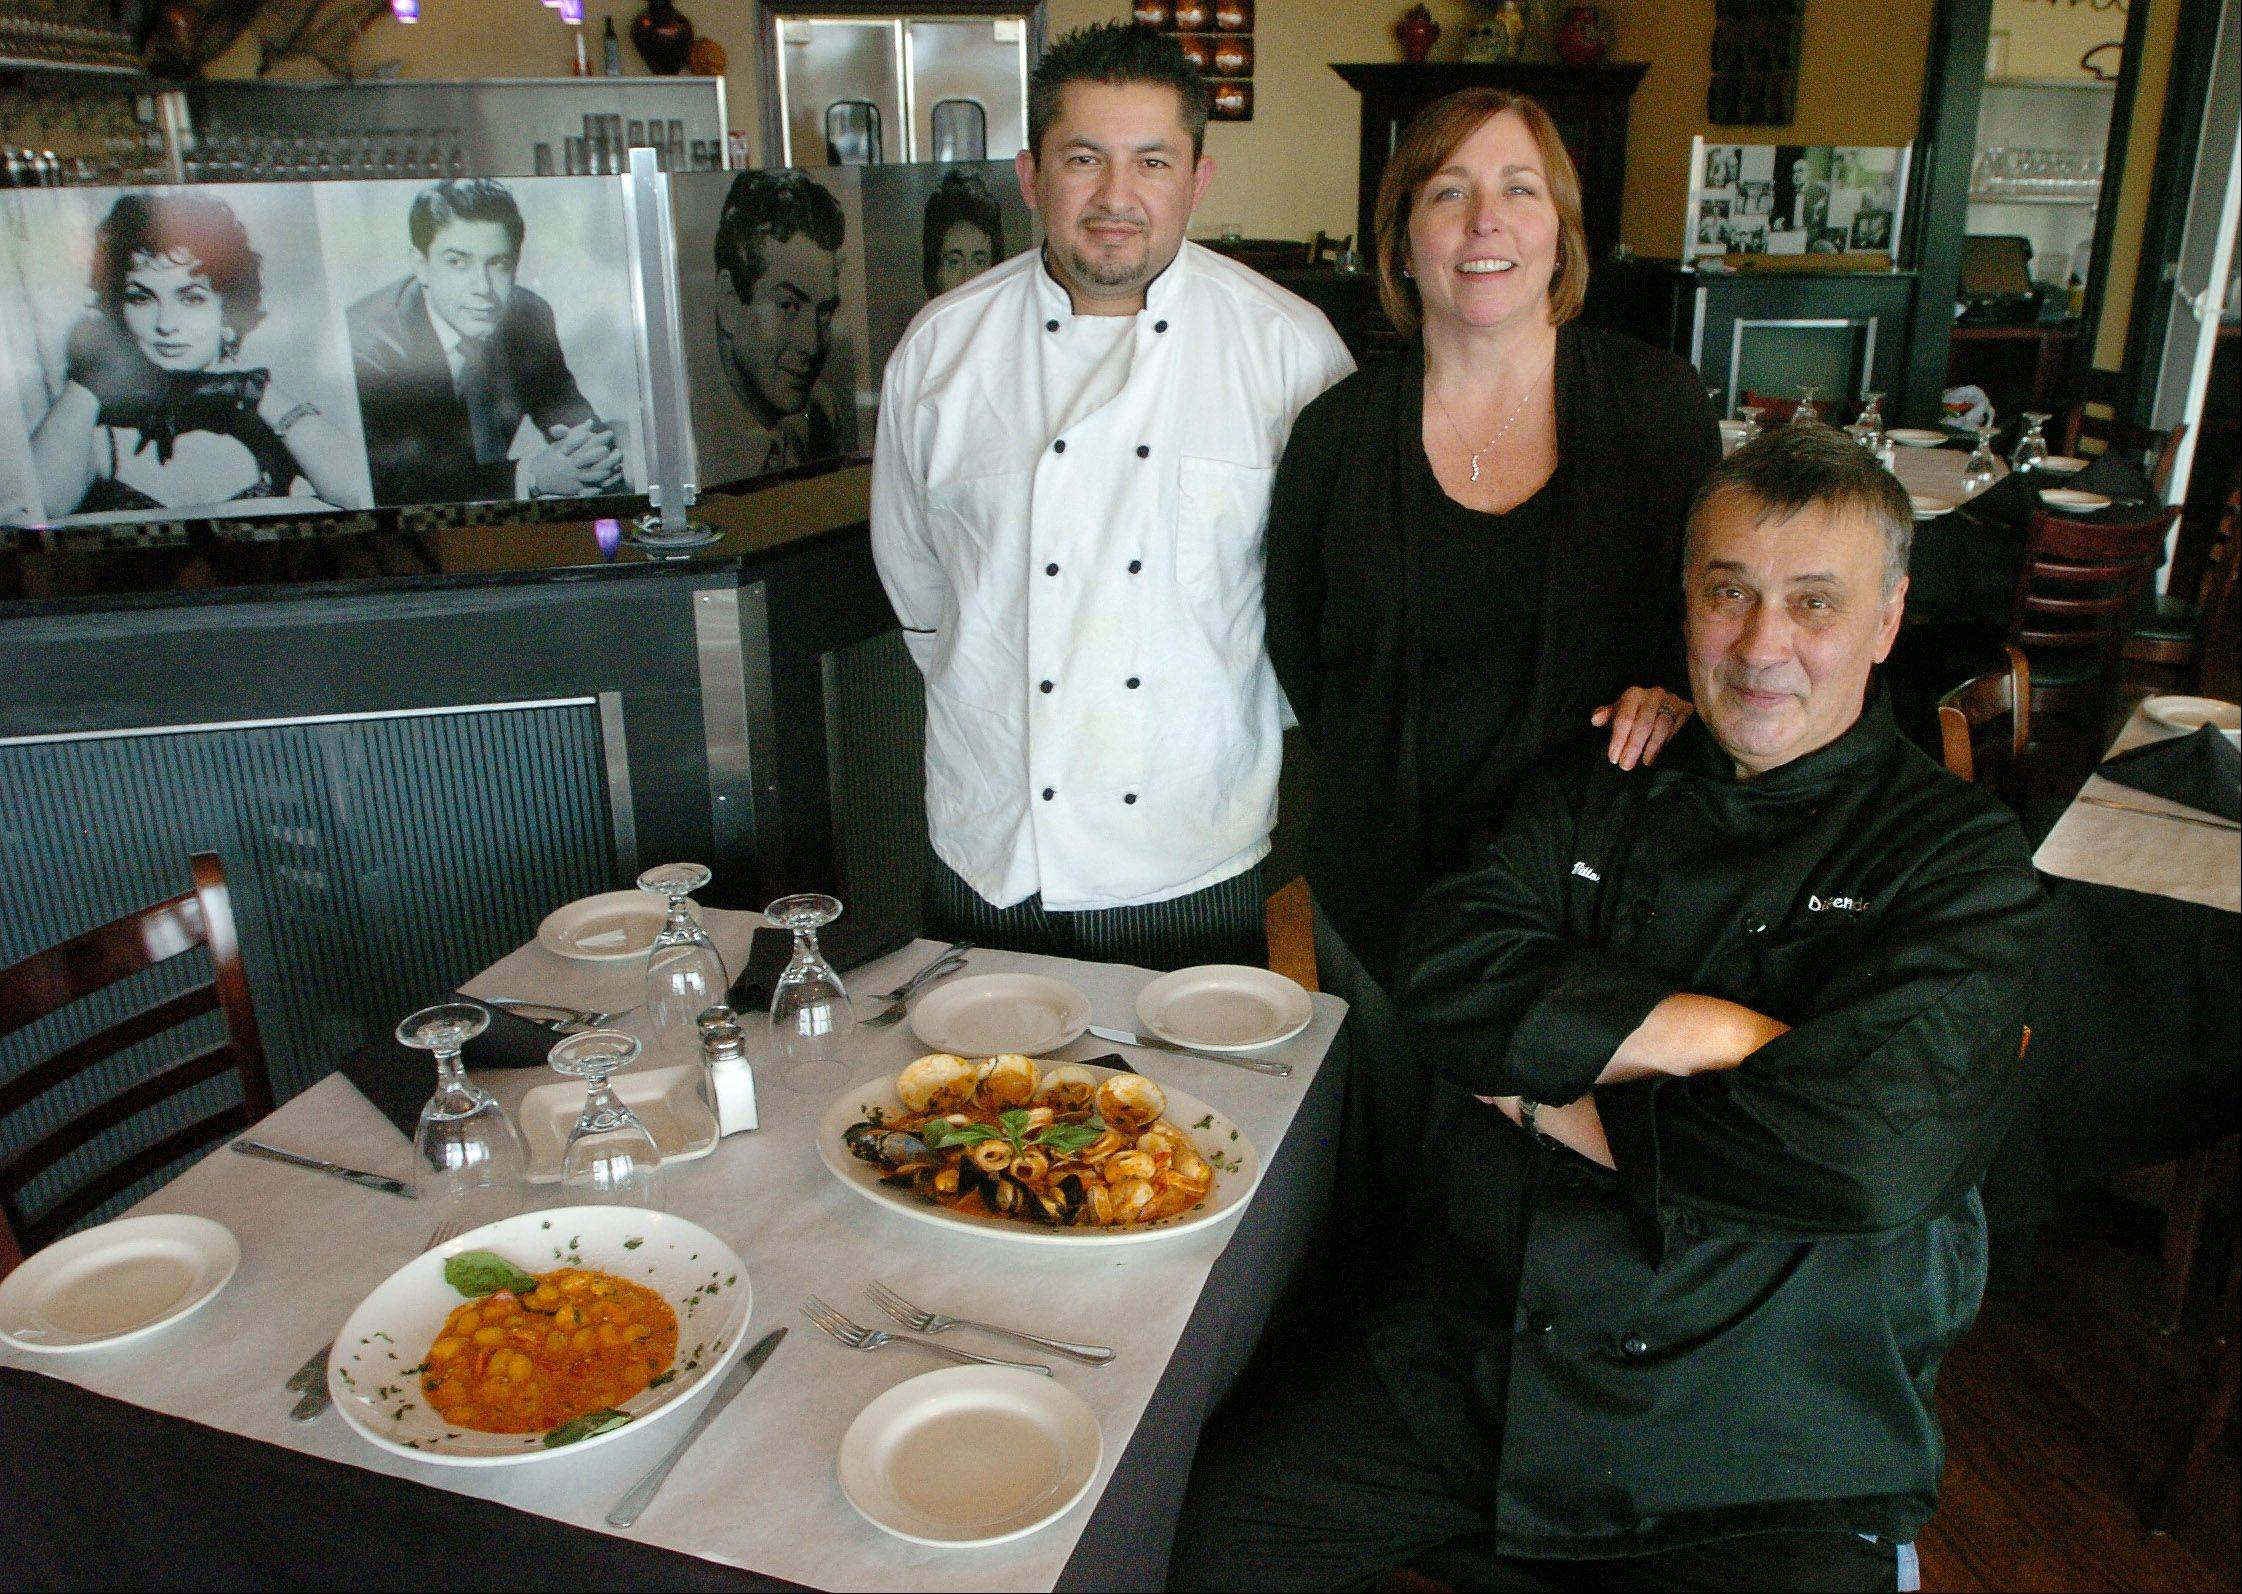 Chef de cuisine, Arturo Gomez, from left, owner Kathy Oberli and executive chef Vittorio Di Benedetto are waiting to serve you at DiBenedetto Trattoria in Hoffman Estates.